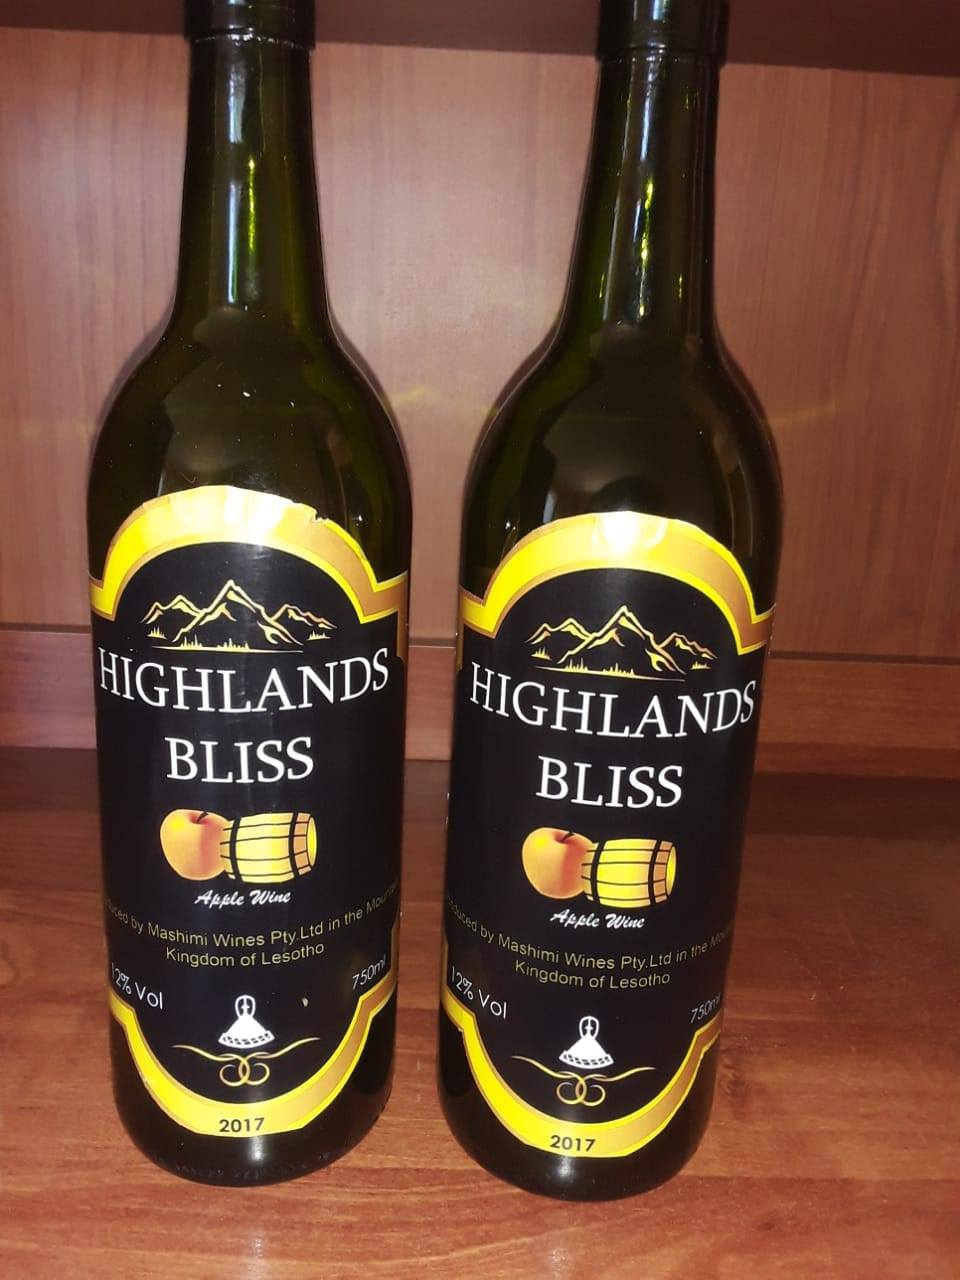 NUL tested wine matures into a Highlands Bliss